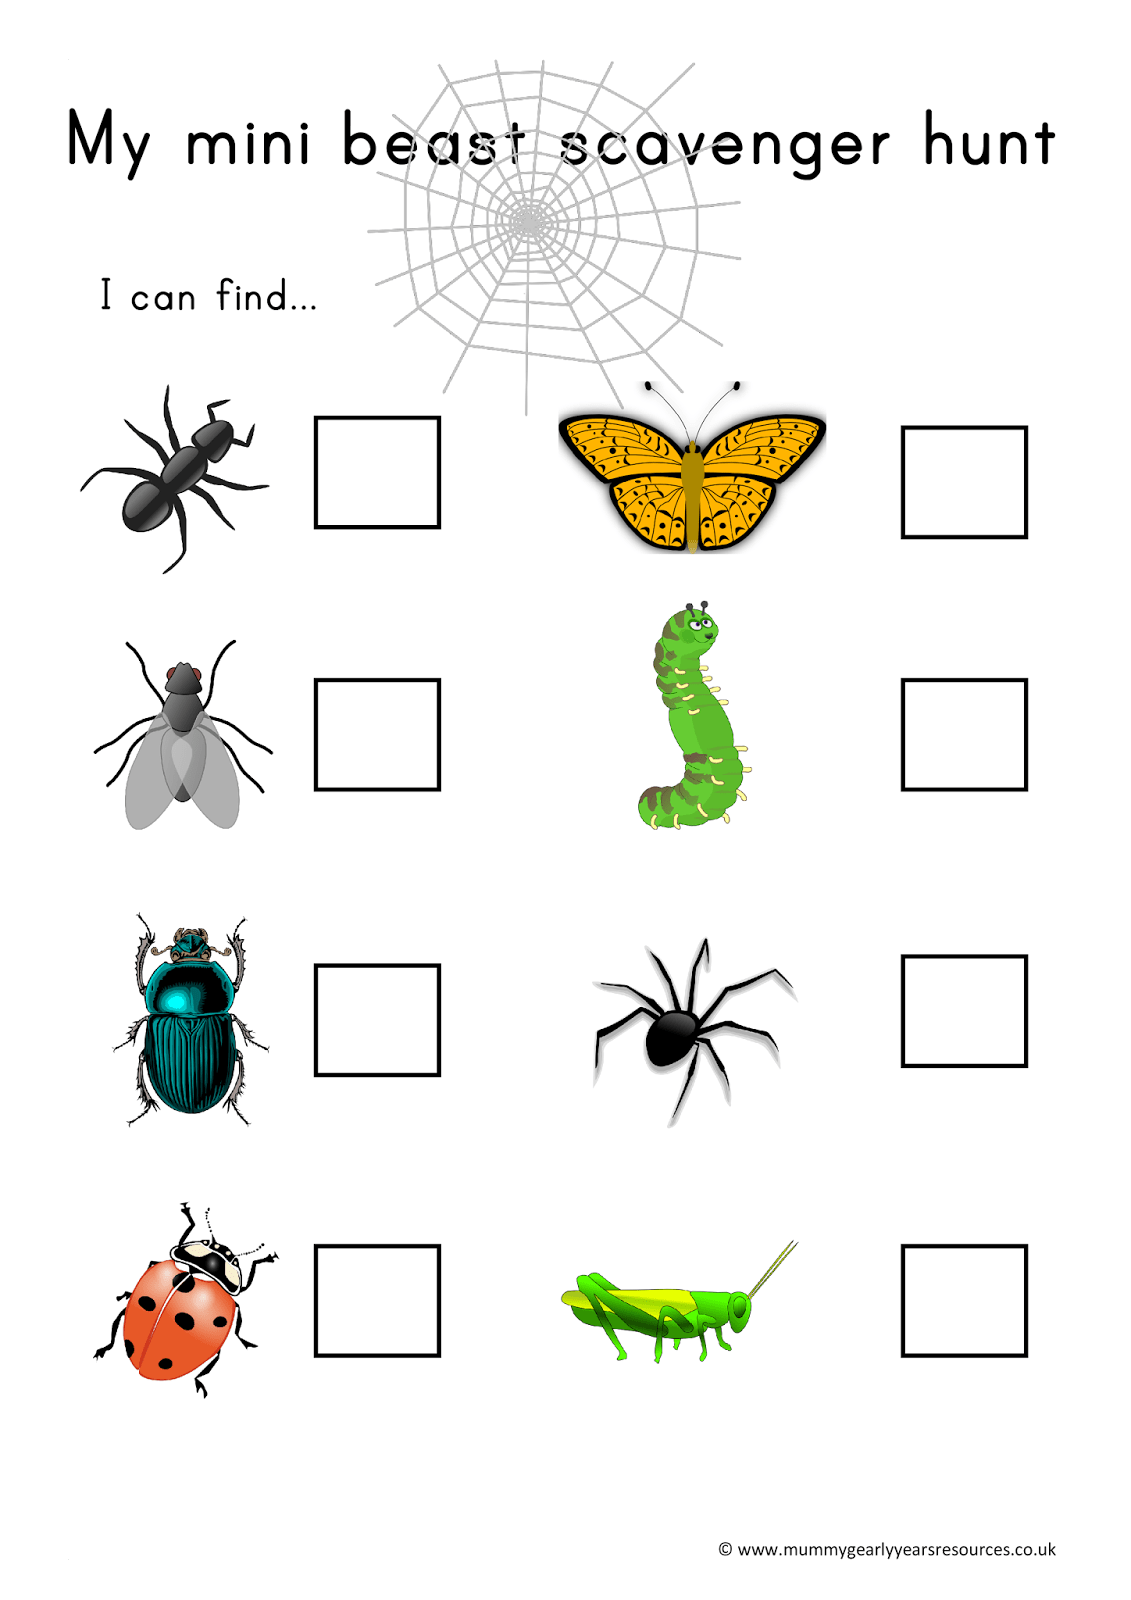 Mummy G Early Years Resources Mini Beast Scavenger Hunt